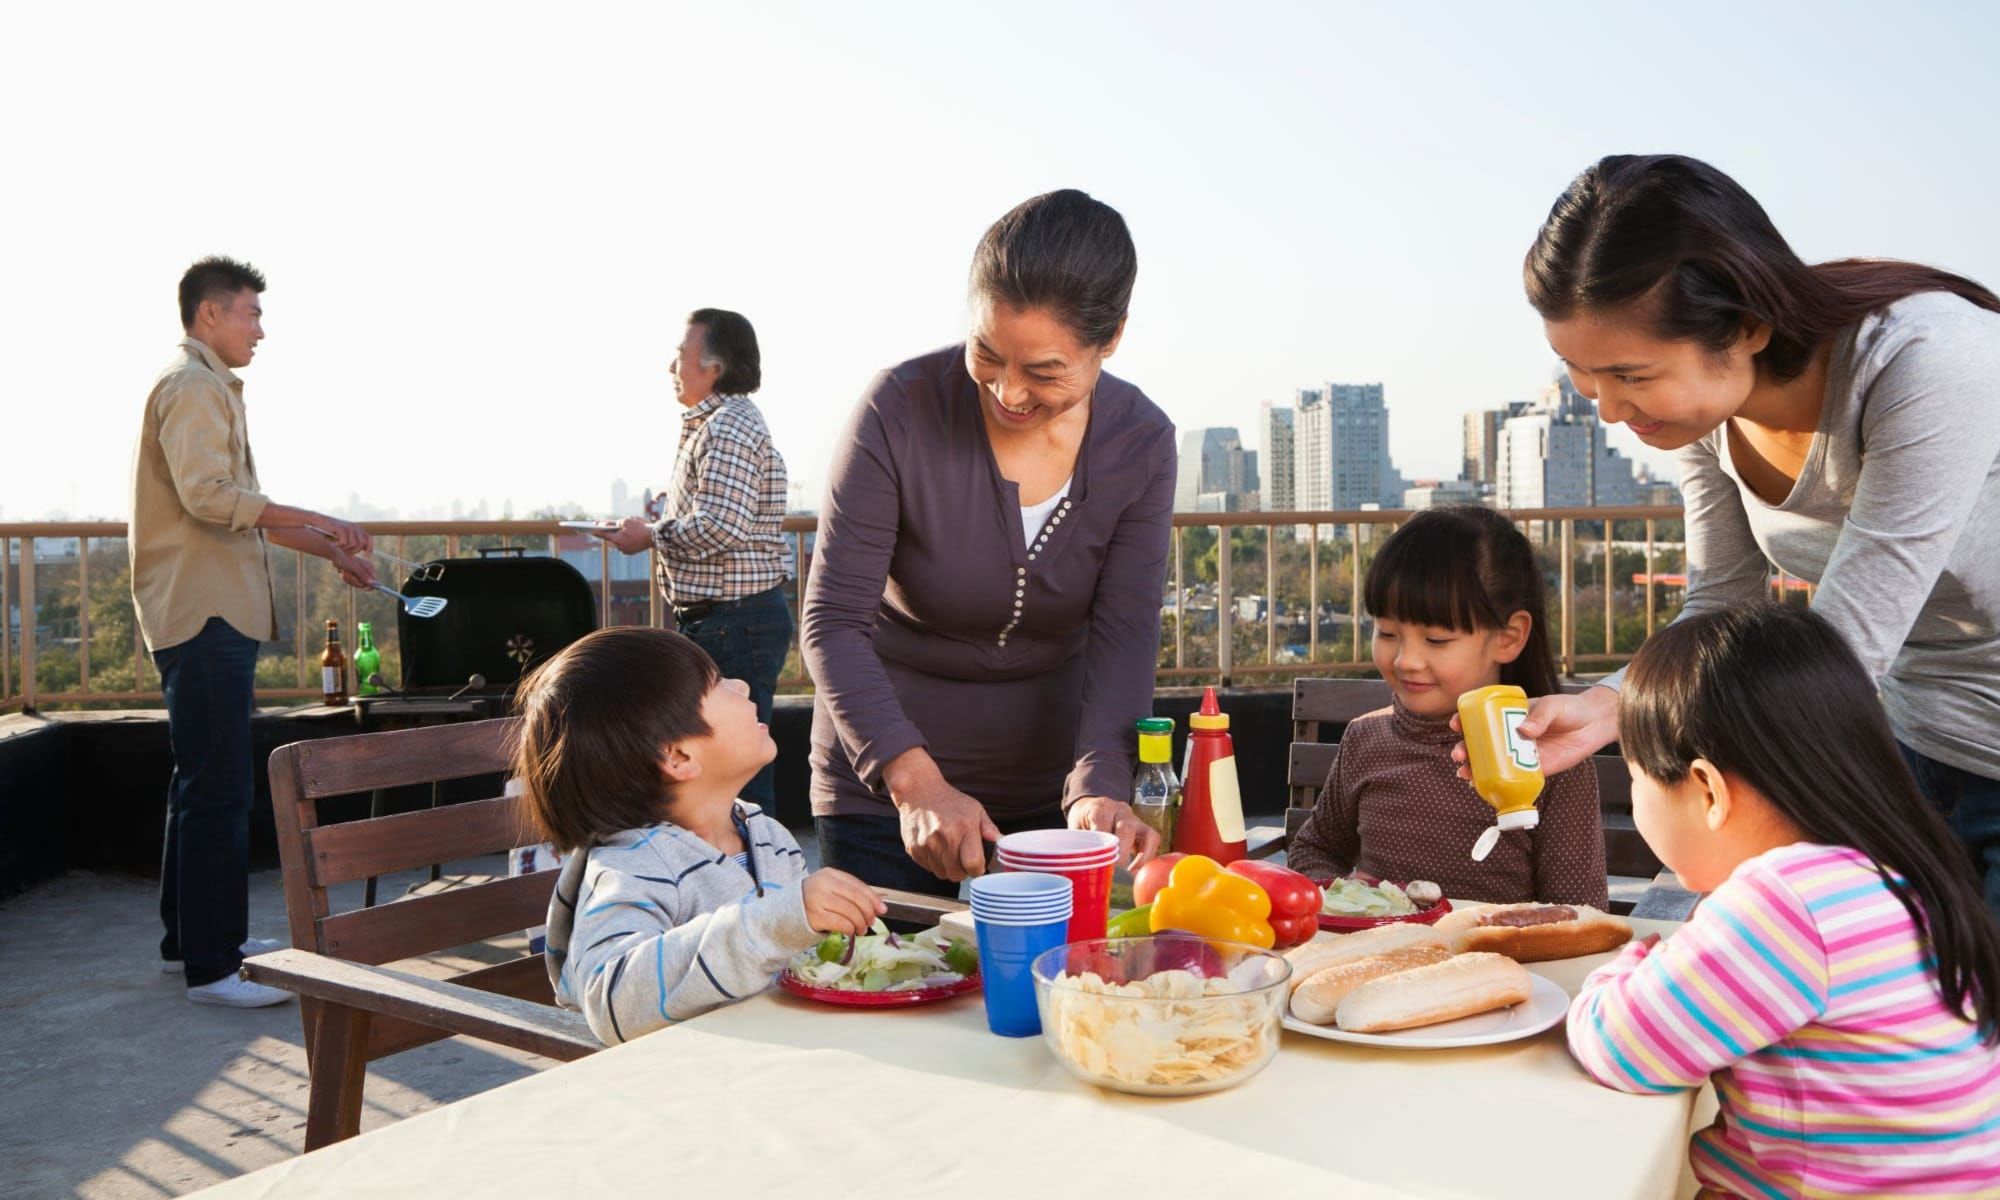 Family grilling and barbequing on a rooftop at Liberty SKY in Salt Lake City, Utah